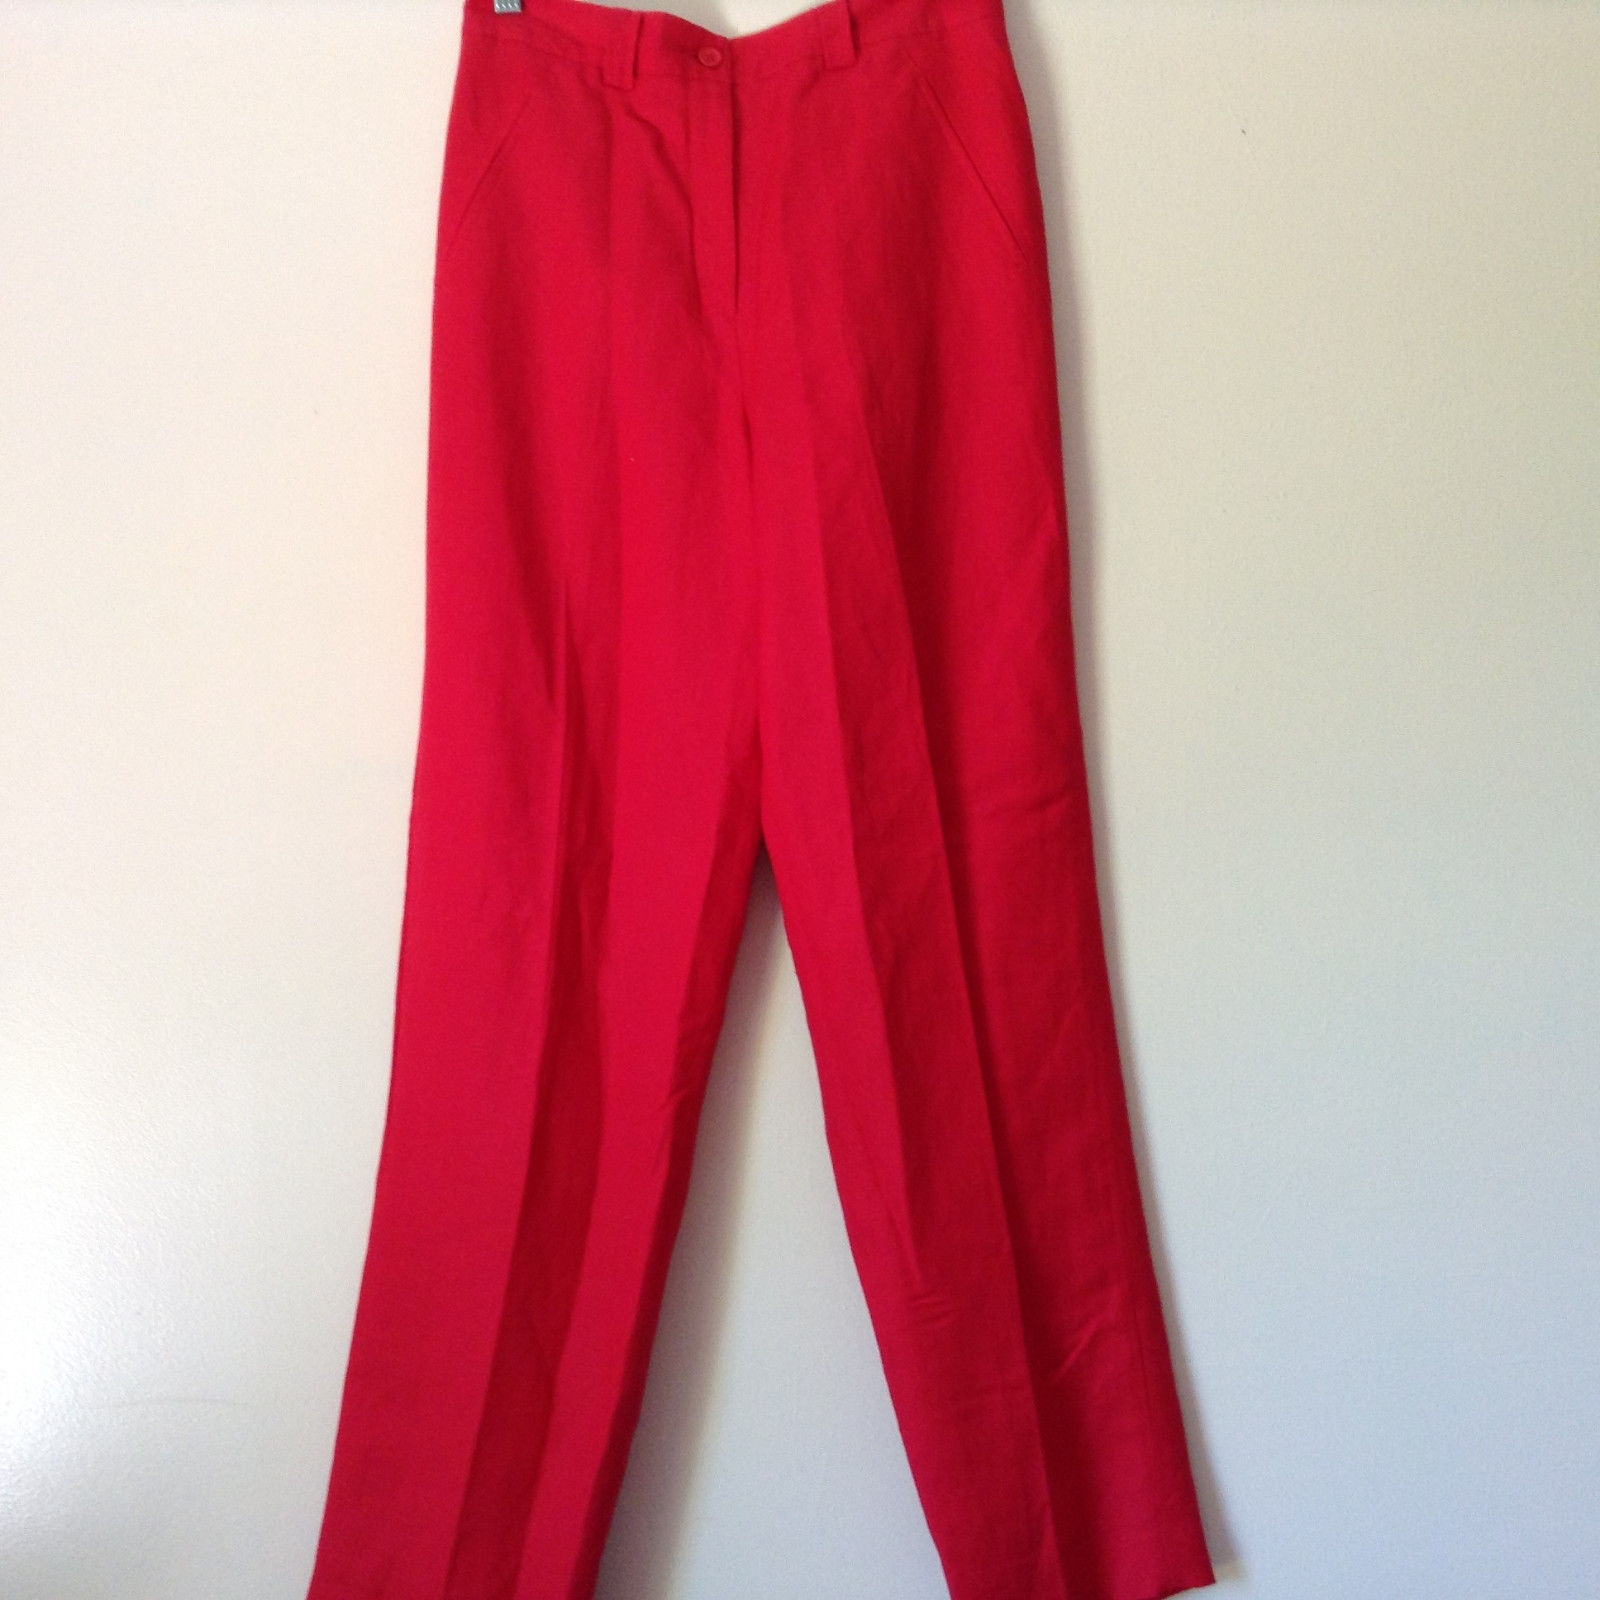 Larry Levine Sport Bright Red Pants Lining is 100 Percent Polyester